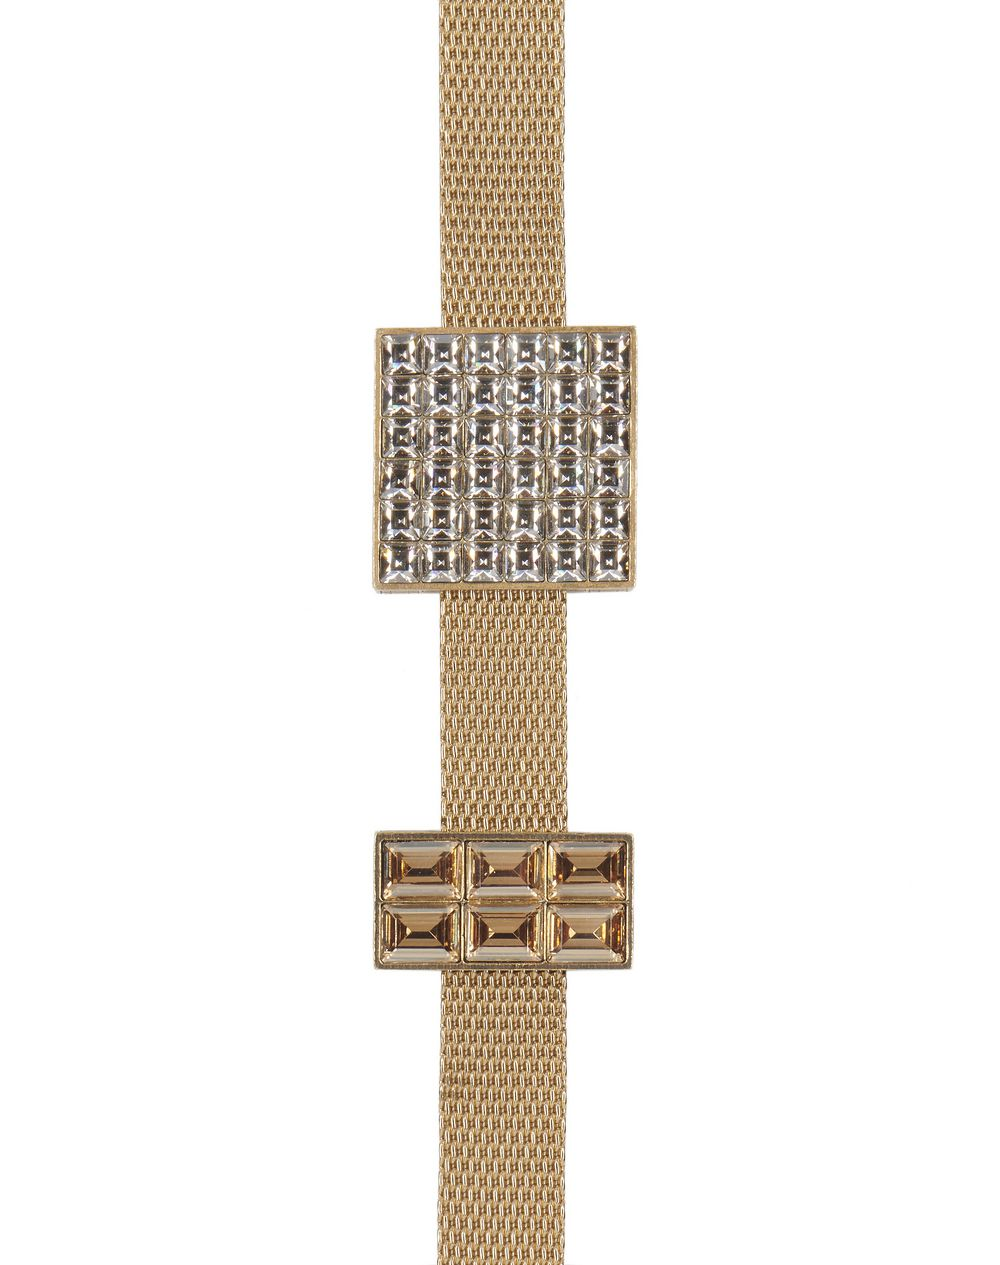 LUXBOX BRONZE AND GOLD NECKLACE/BRACELET - Lanvin